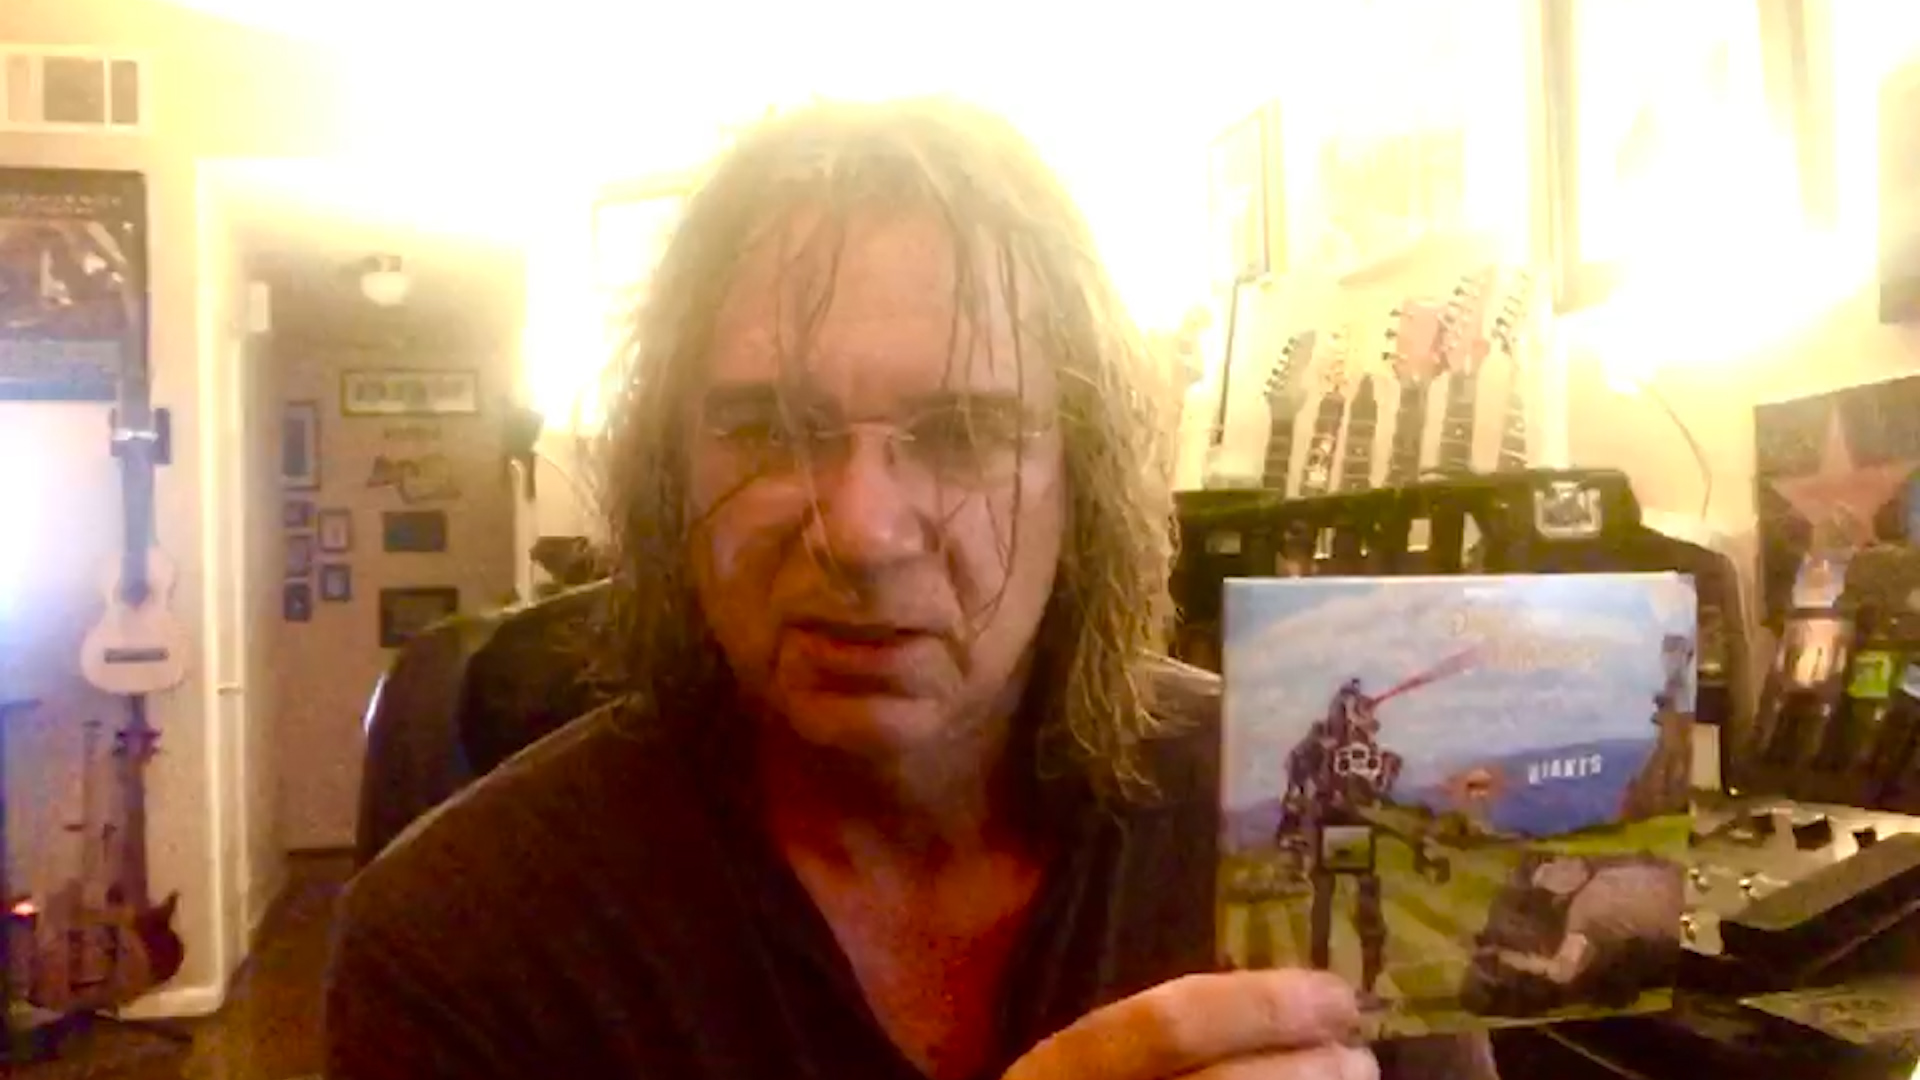 Billy Sherwood of YES talks about the new album GIANTS from Days Between Stations